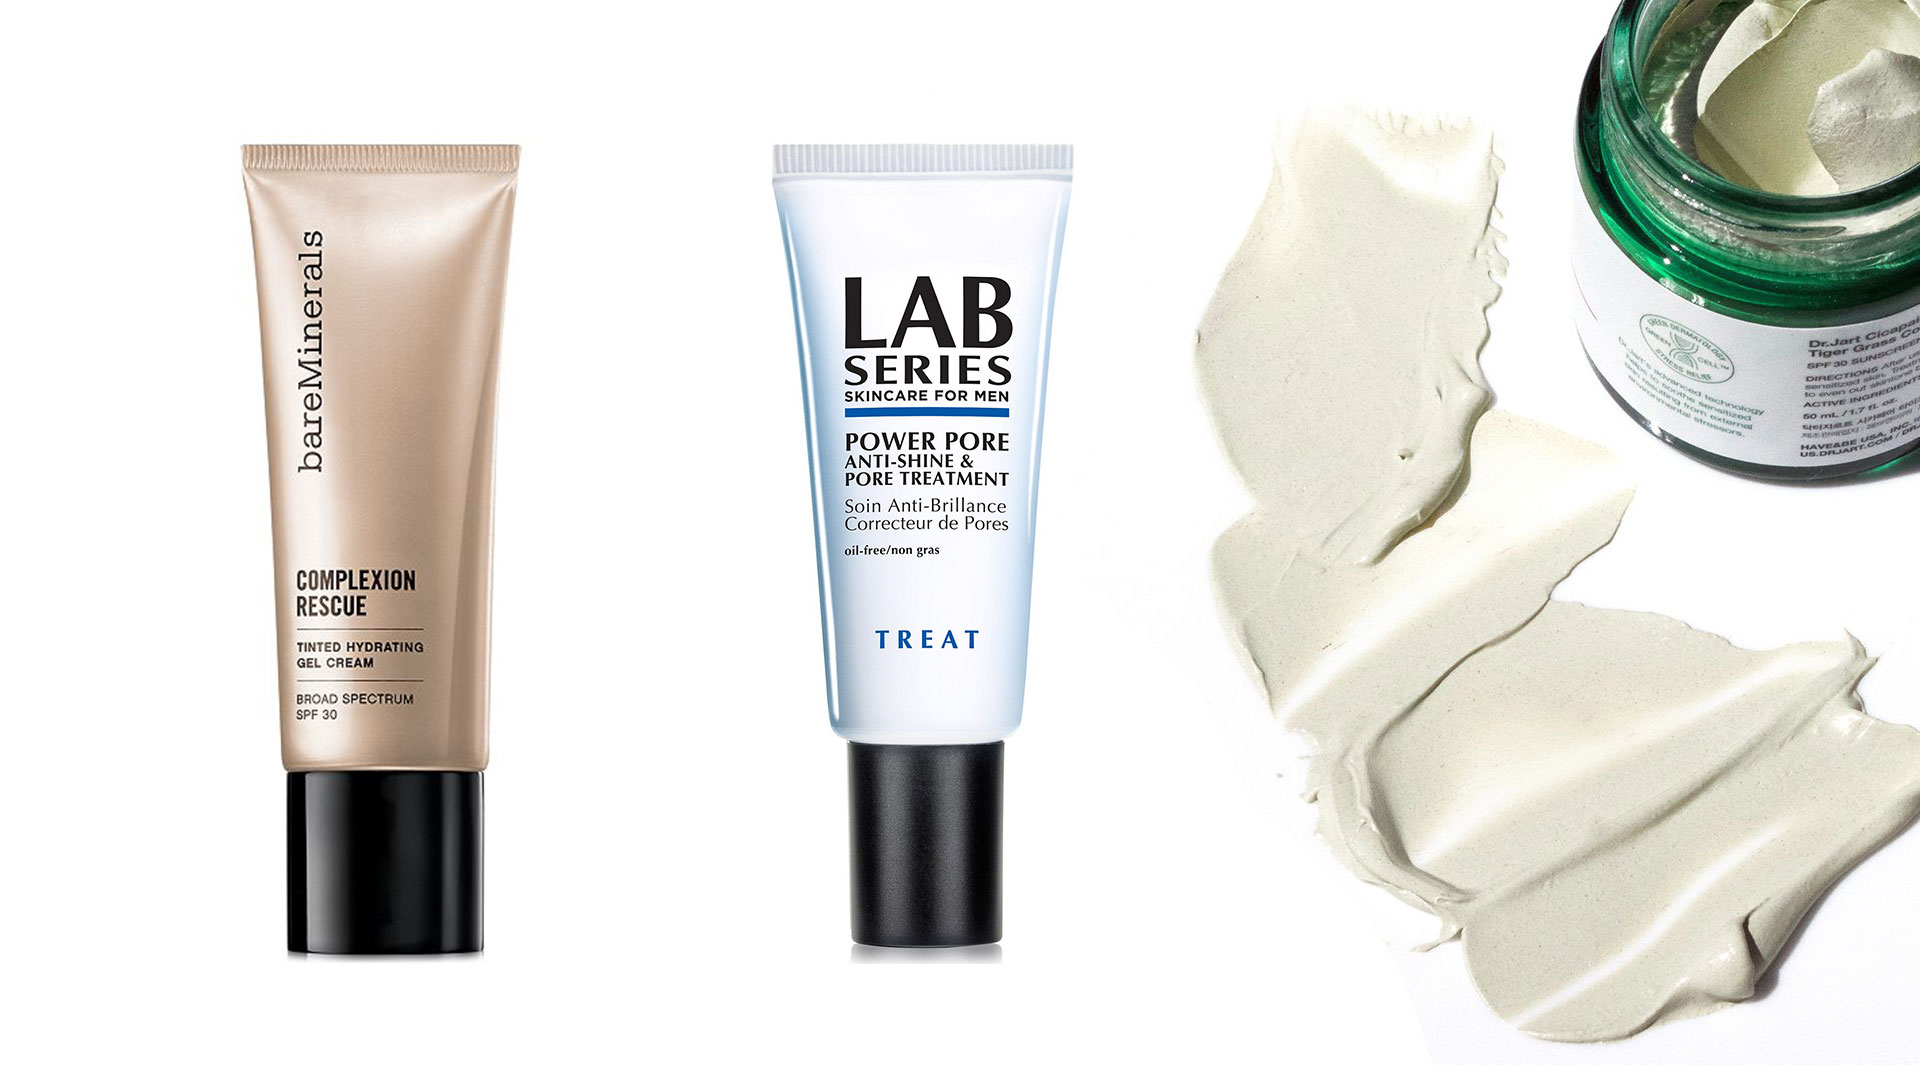 The Best Makeup for Men (That Doesn't Capitalize on Outdated Male Stereotypes)